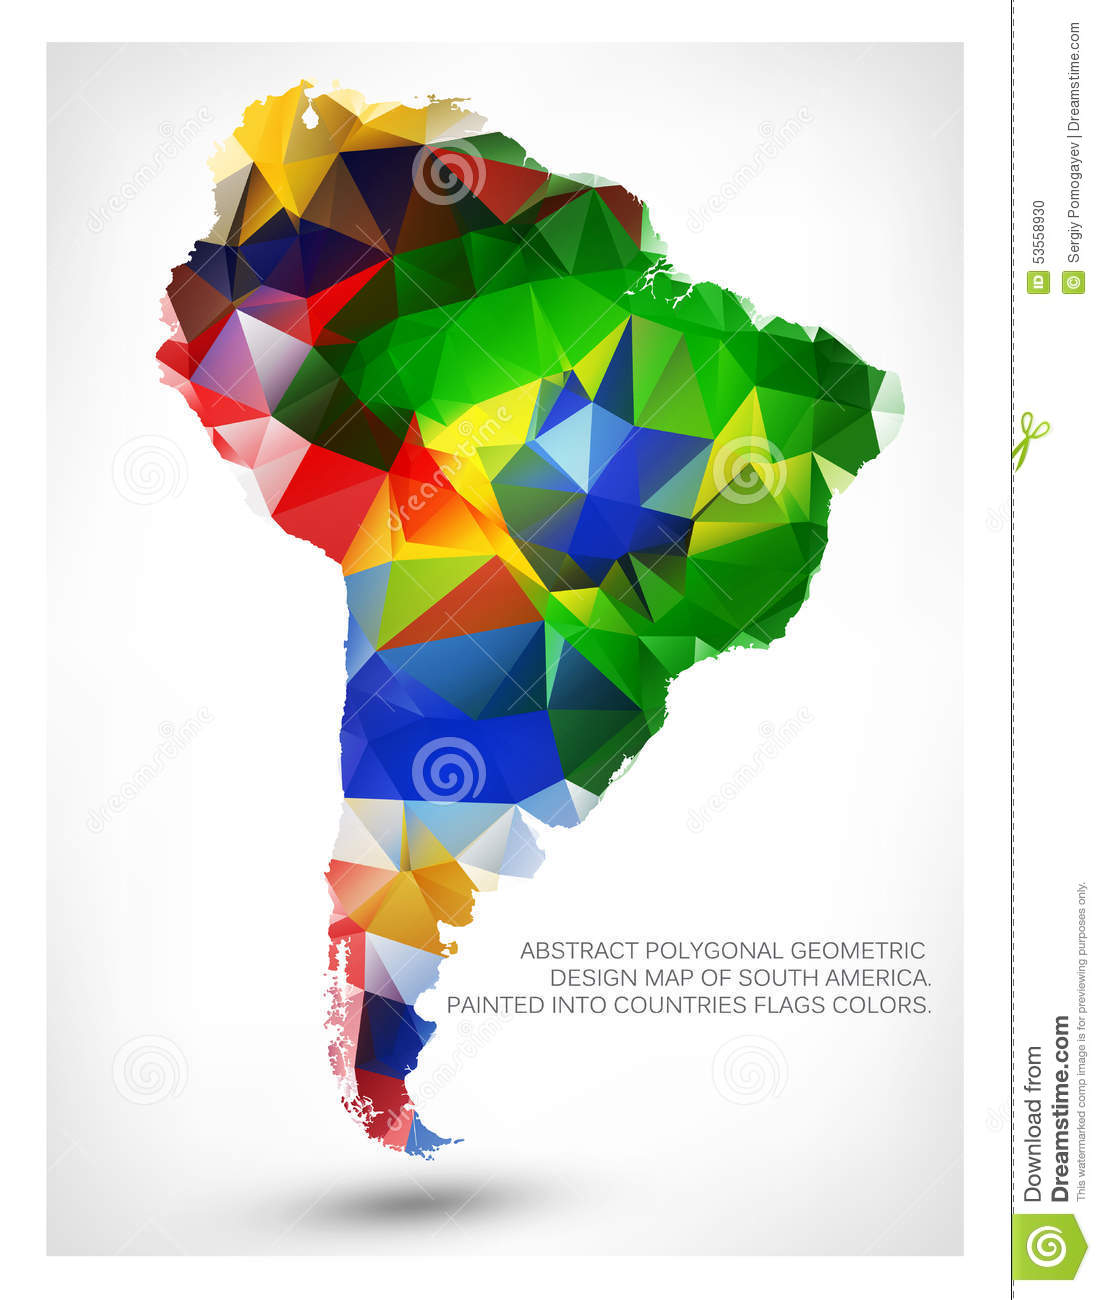 Geometric design map of south america stock photo image of ecuador geometric design map of south america gumiabroncs Gallery